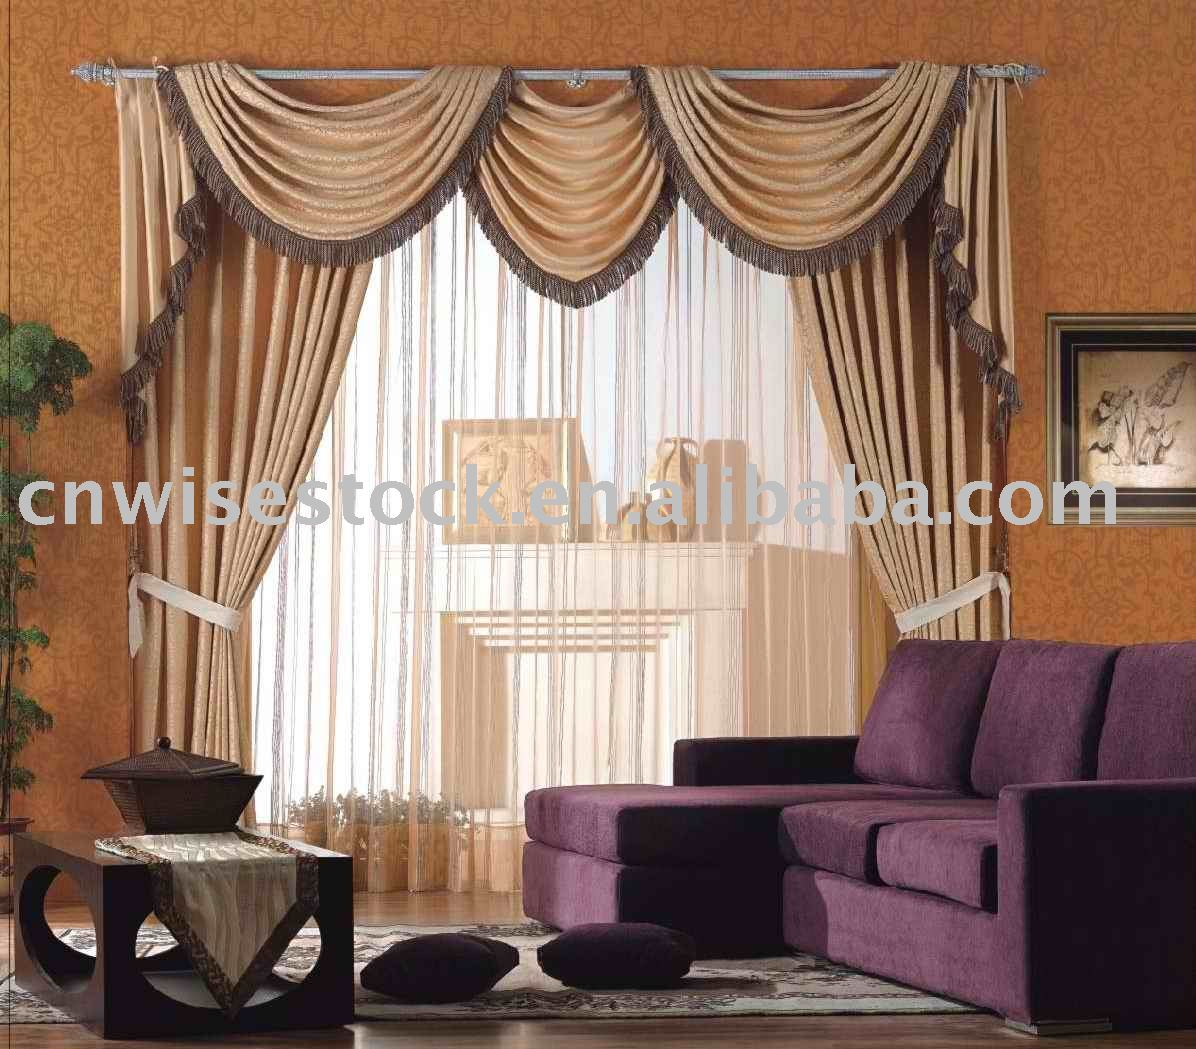 Window Treatments - Windows Treatment Ideas from 1stBlinds